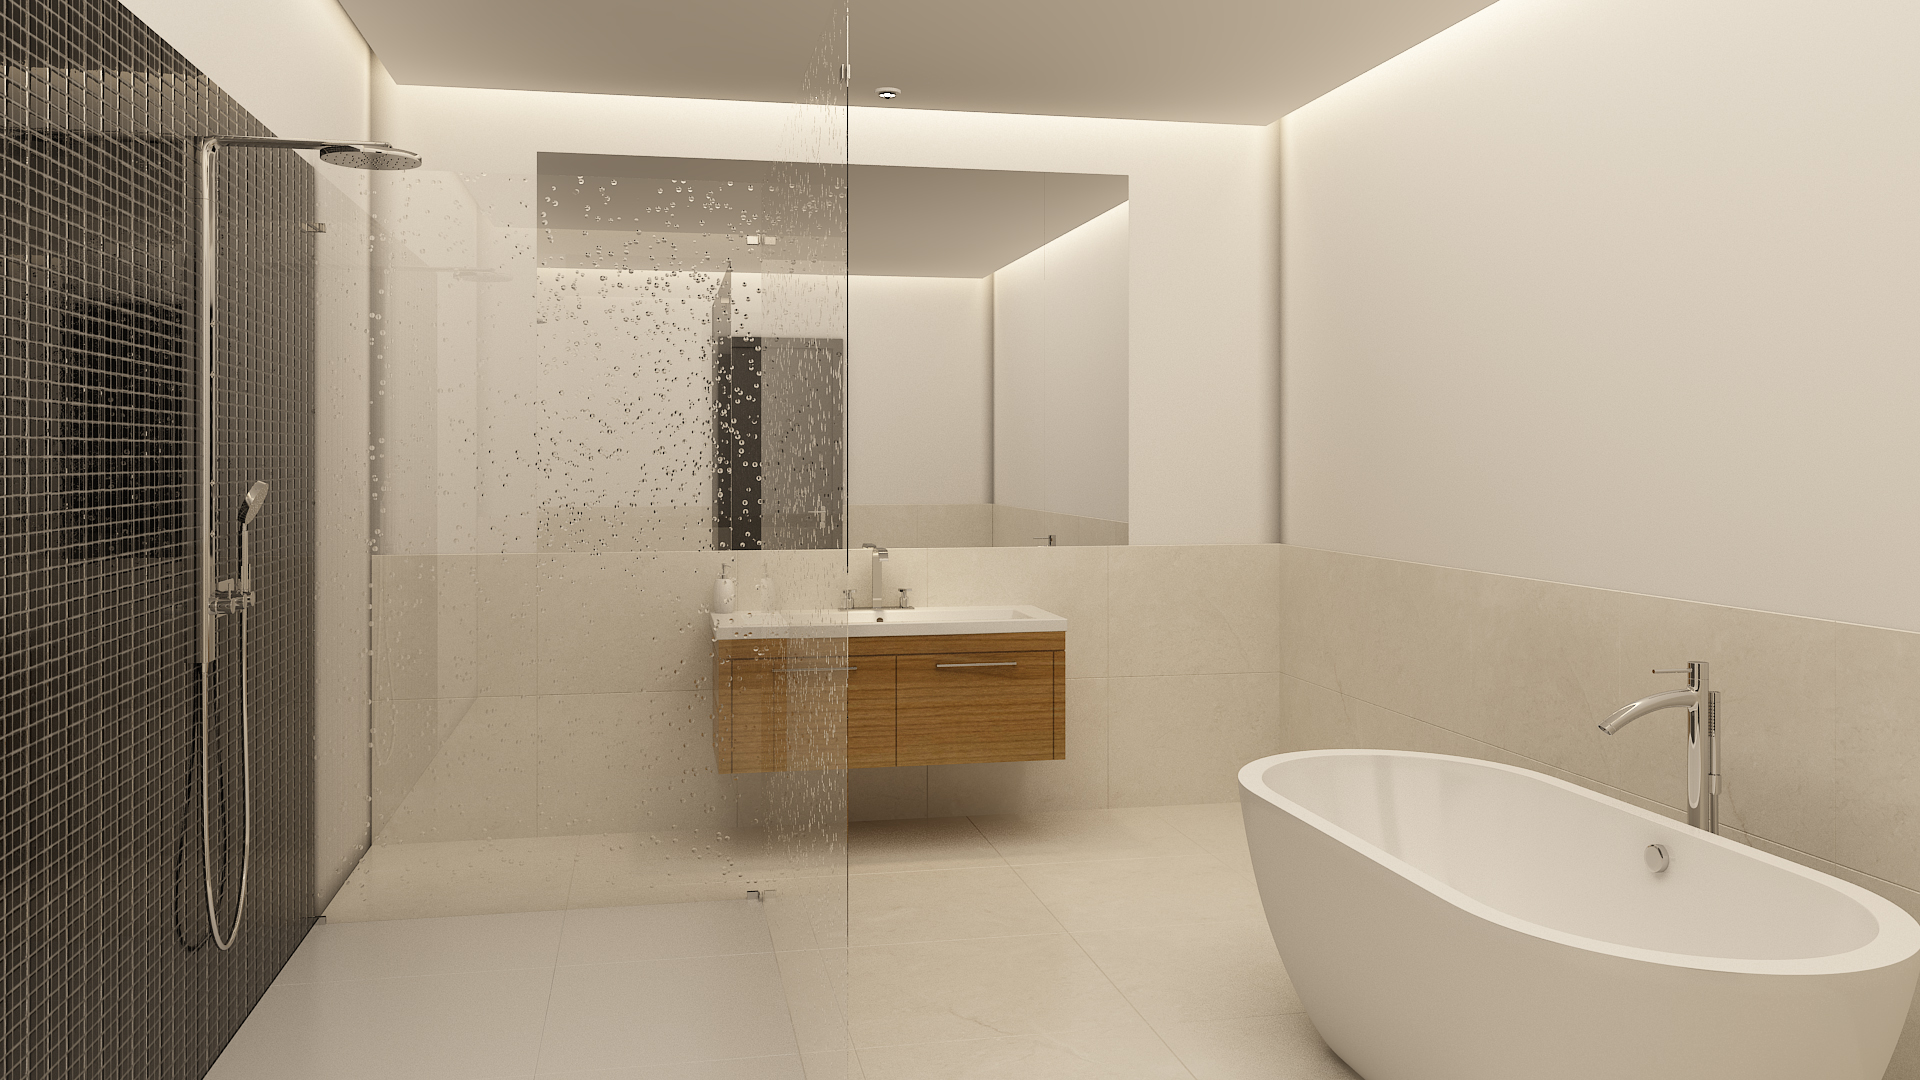 CGI Bathroom Scene Photography